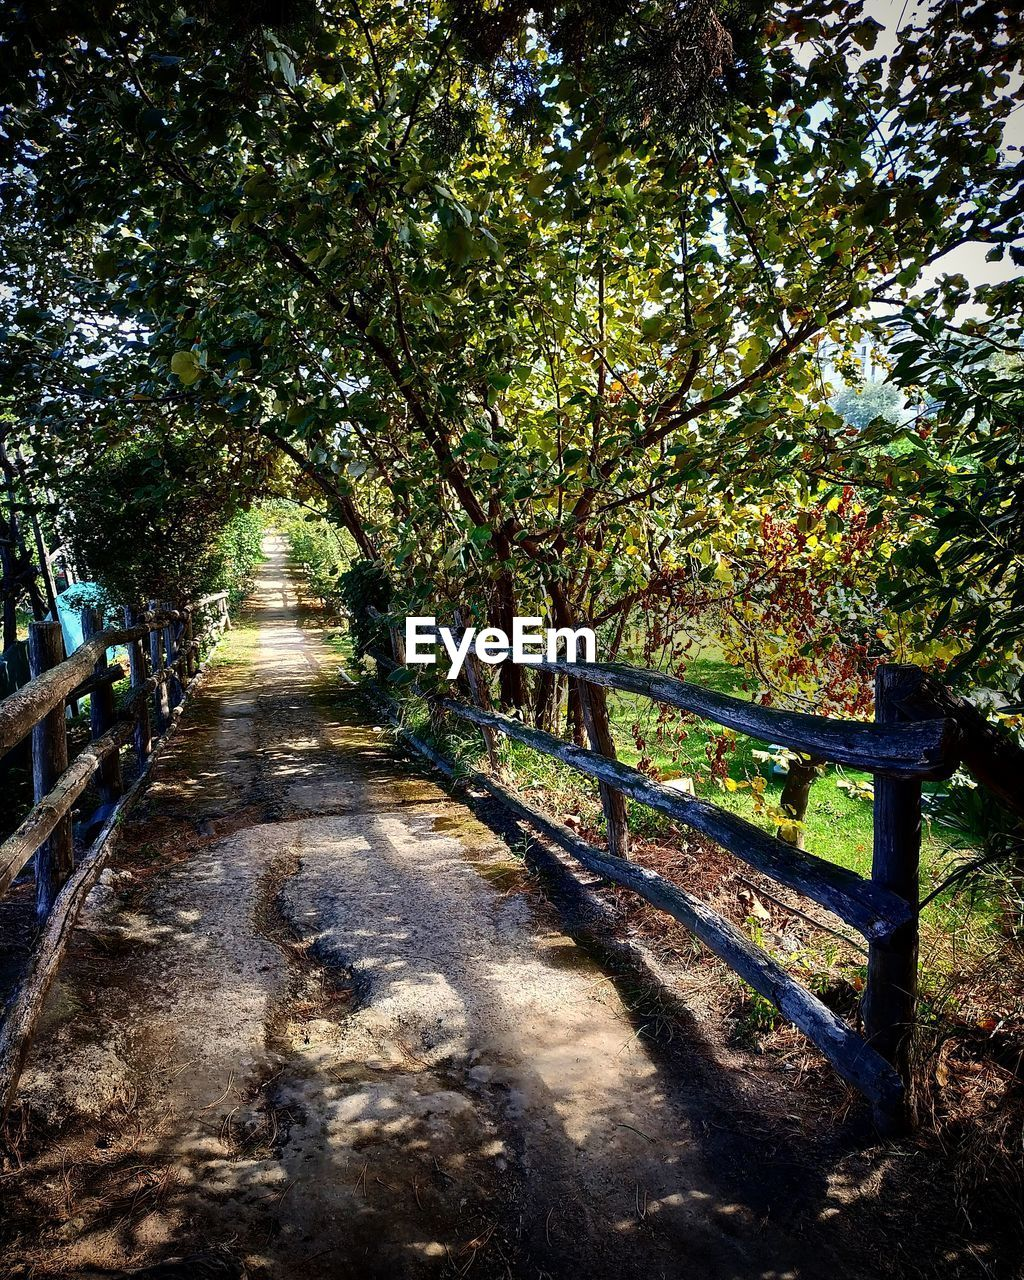 tree, plant, direction, the way forward, nature, footpath, day, beauty in nature, tranquility, railing, land, shadow, tranquil scene, growth, sunlight, outdoors, no people, forest, scenics - nature, wood - material, diminishing perspective